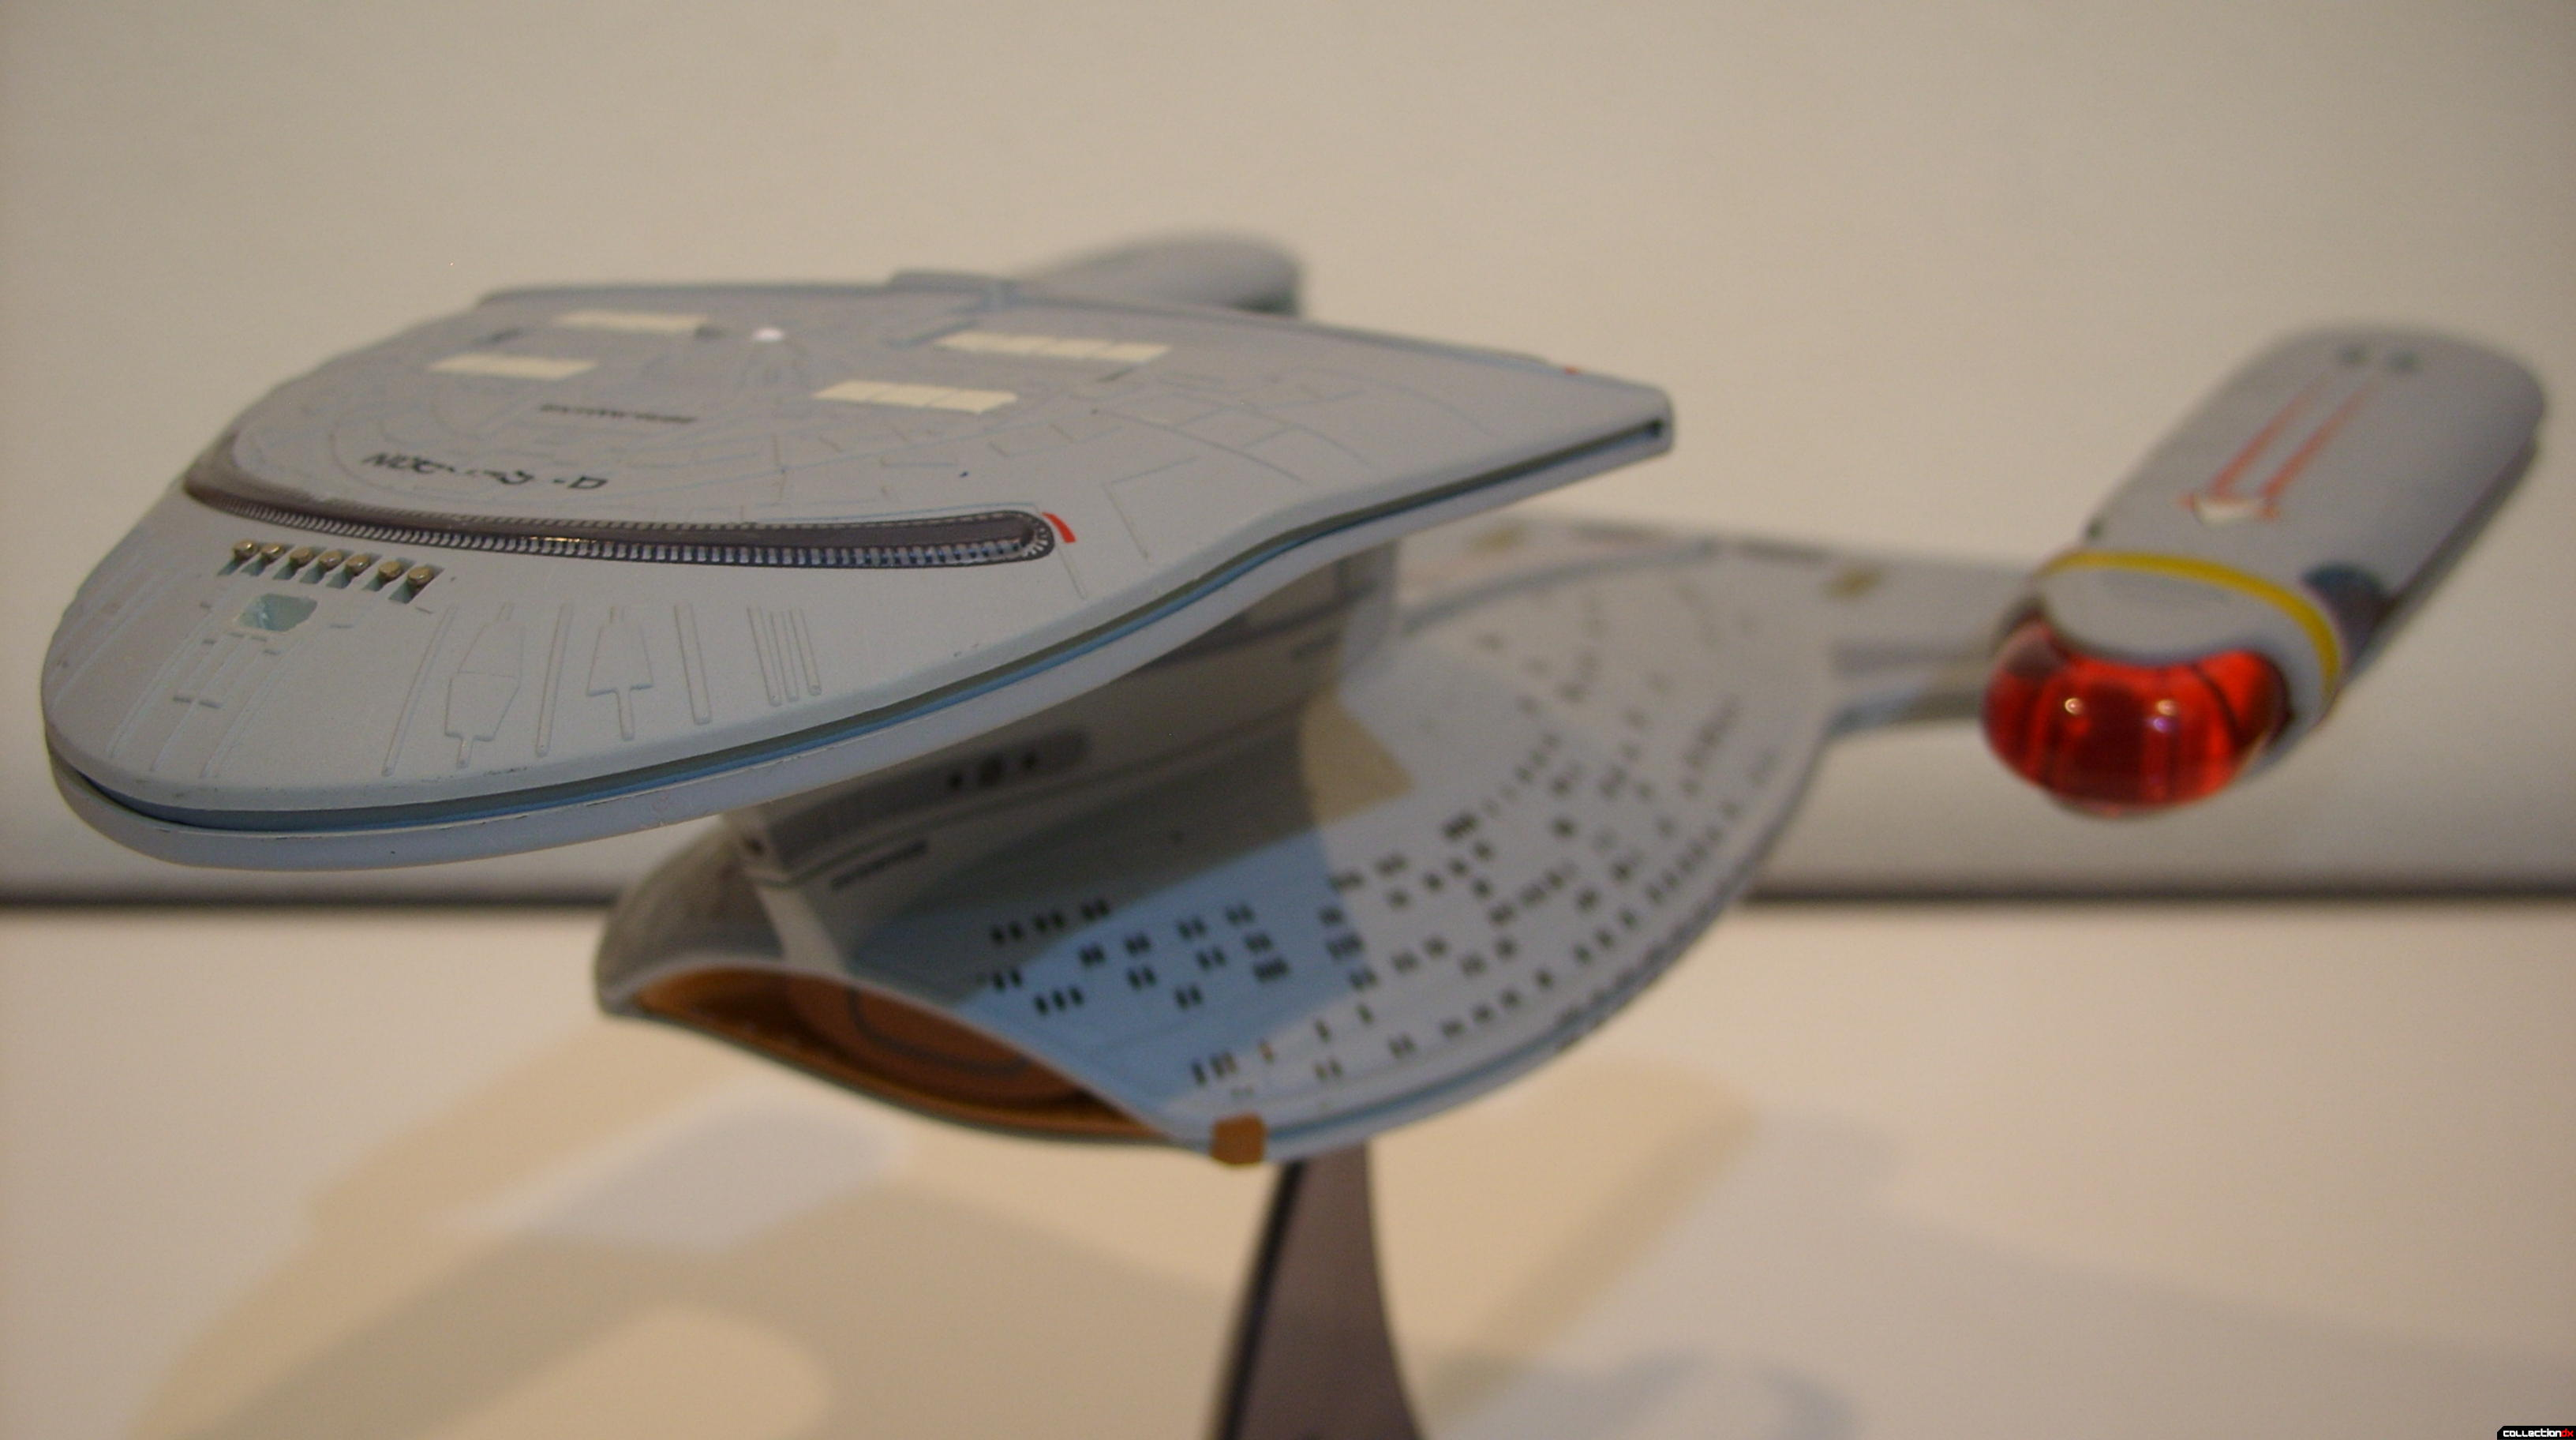 Starship Legends U.S.S. Enterprise-D (Battle Section, forward-dorsal)